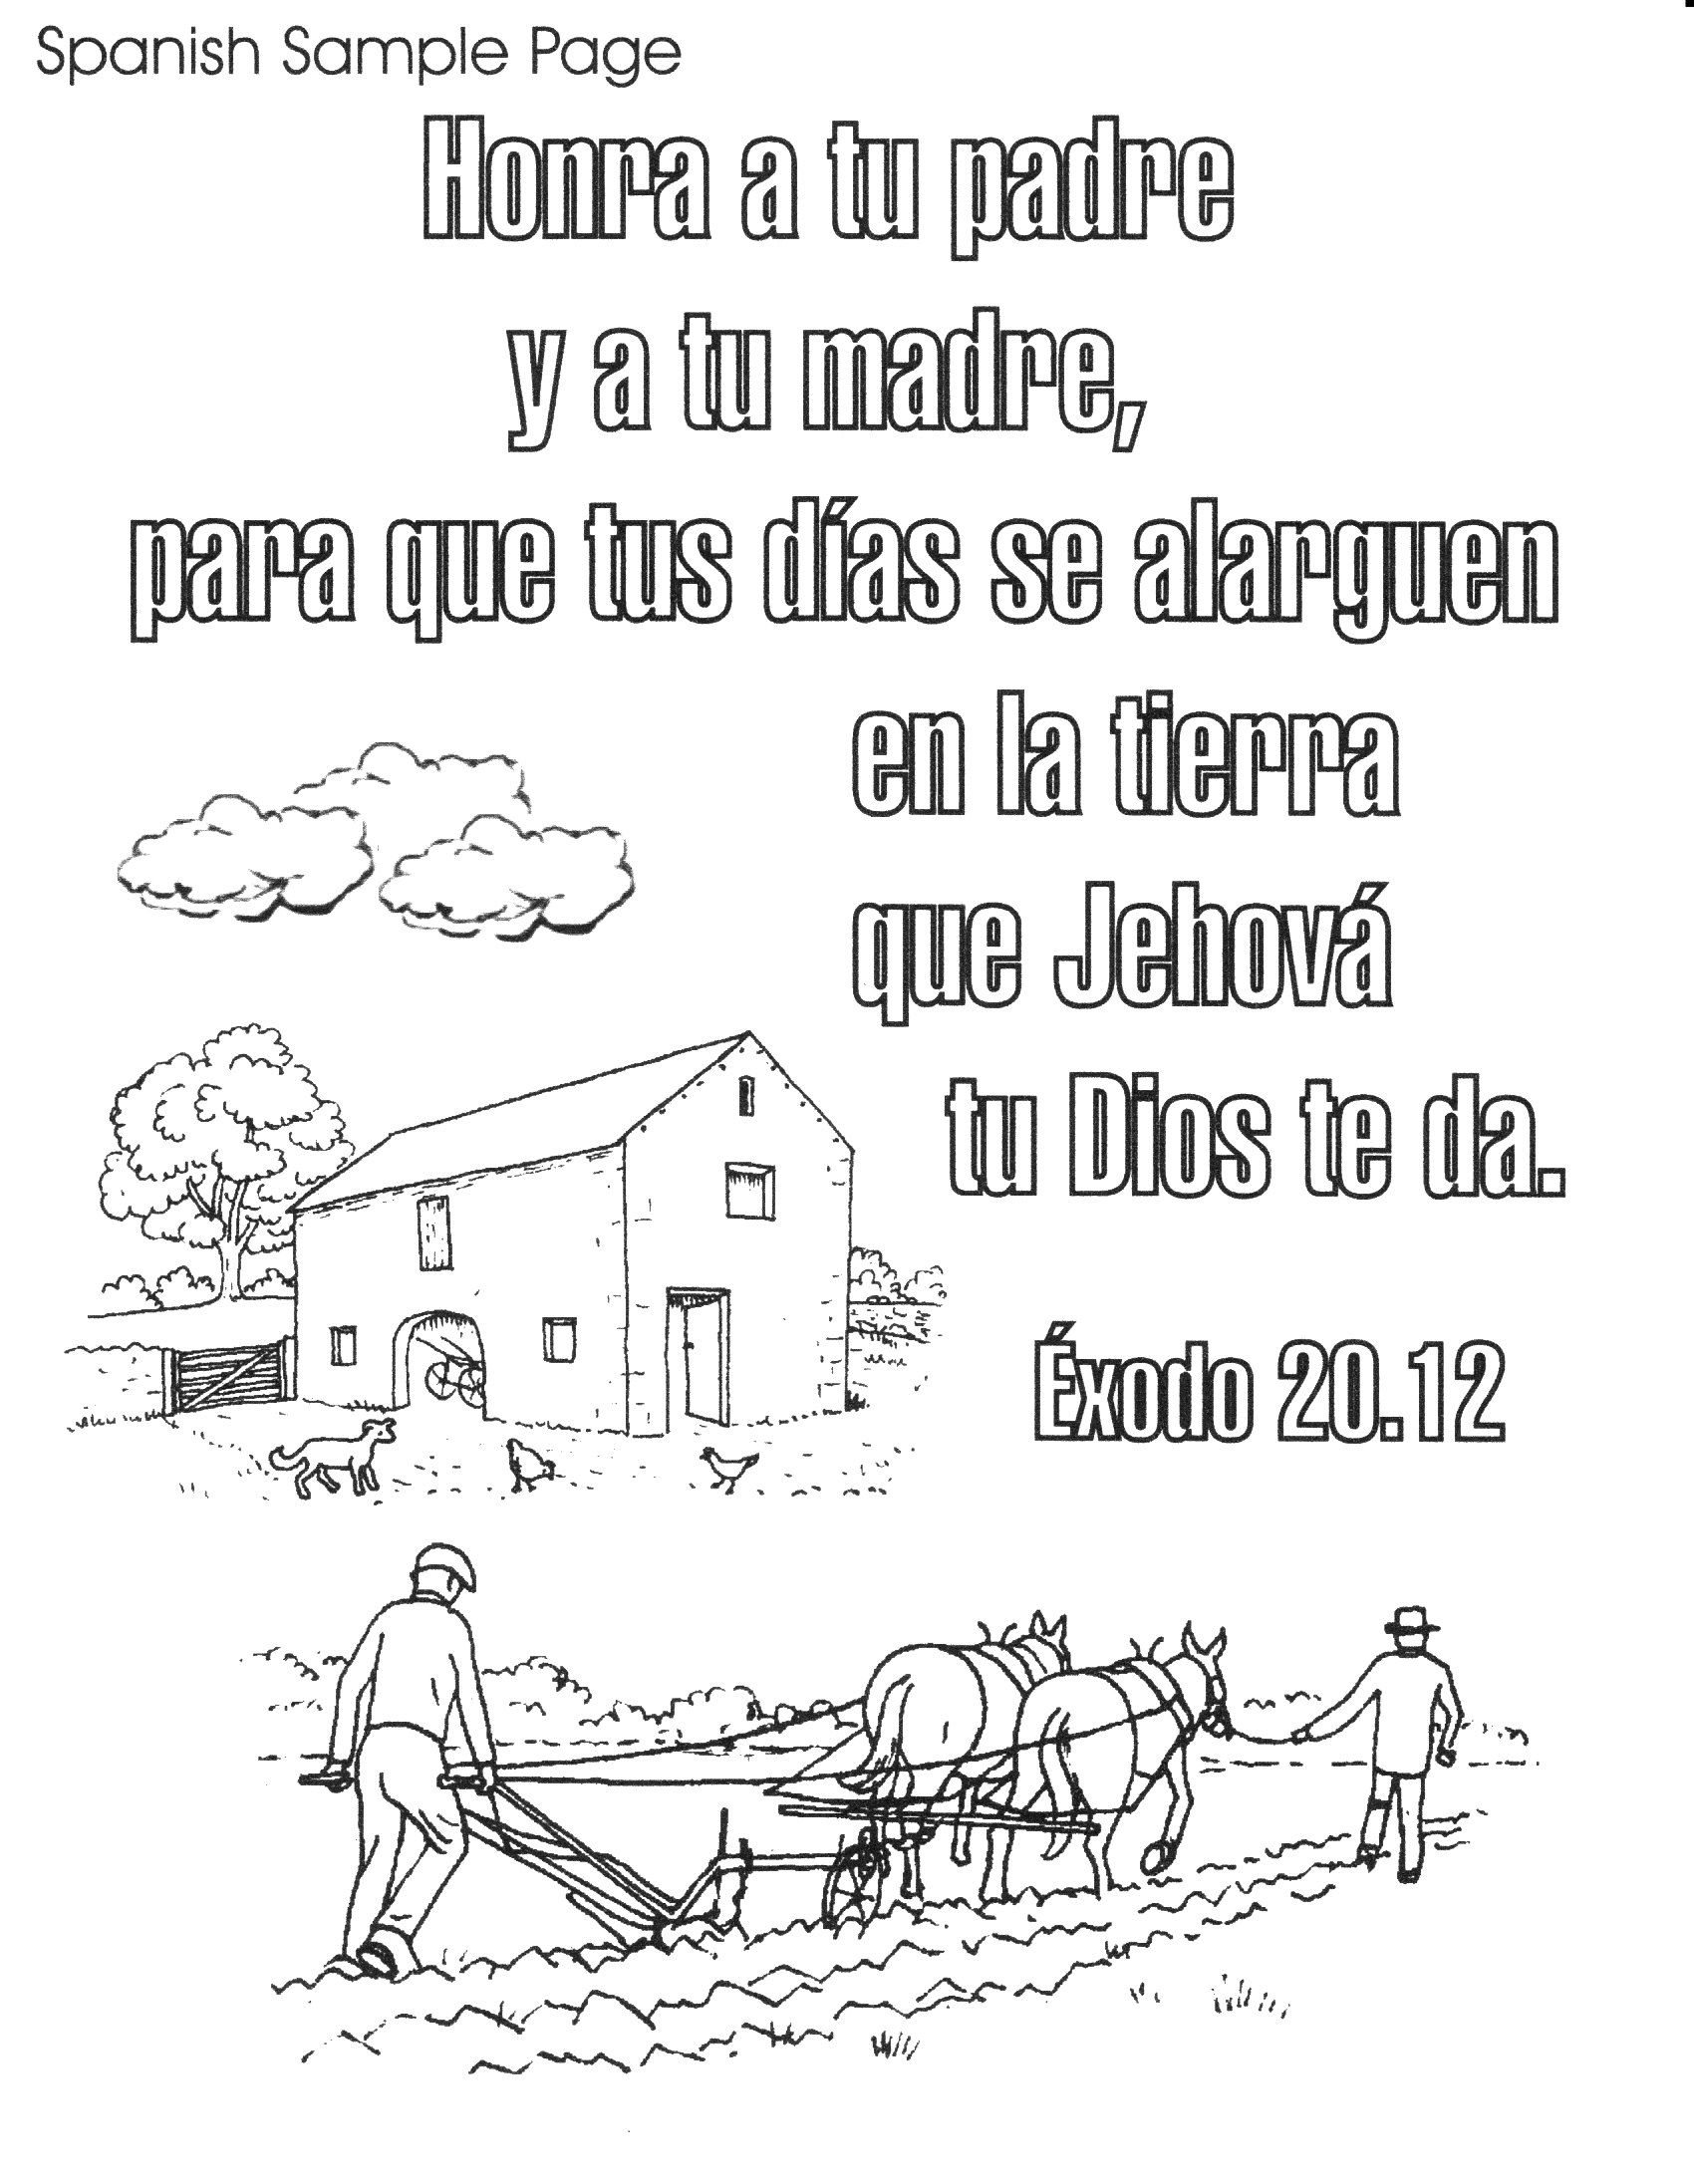 Coloring pages with bible verses - Bible Spanish Coloring Pages Free Printable Spanish Bible Verse Coloring Book